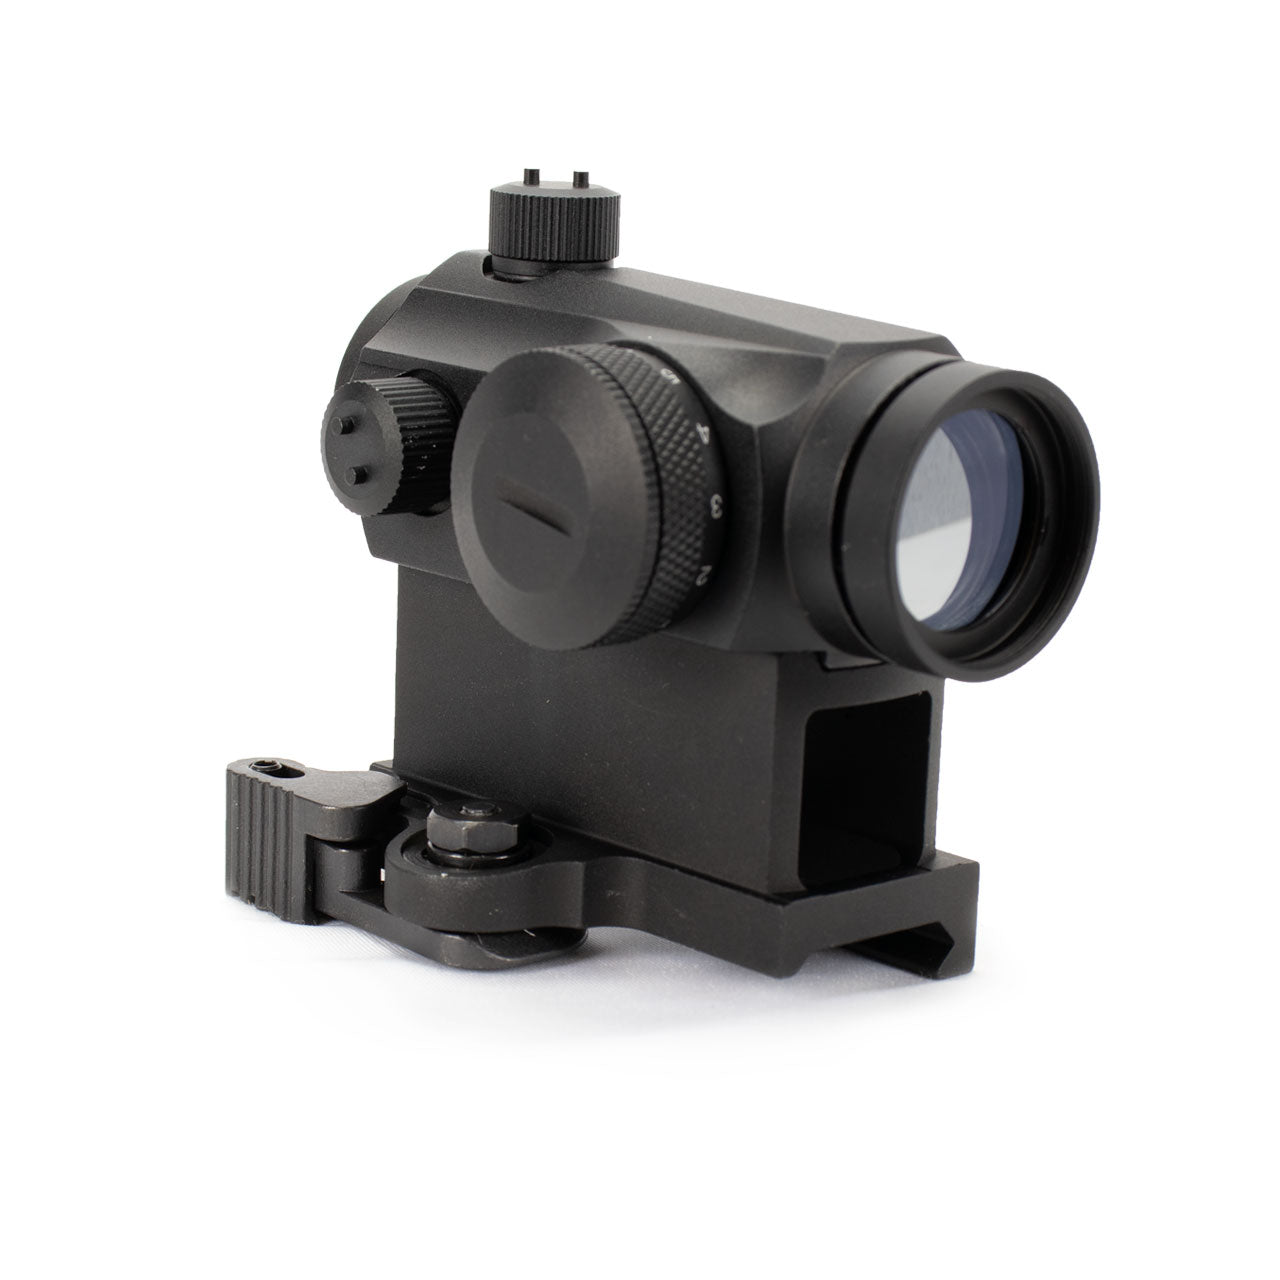 Element T1 Micro Reflex Red & Green Dot Sight with QD Riser